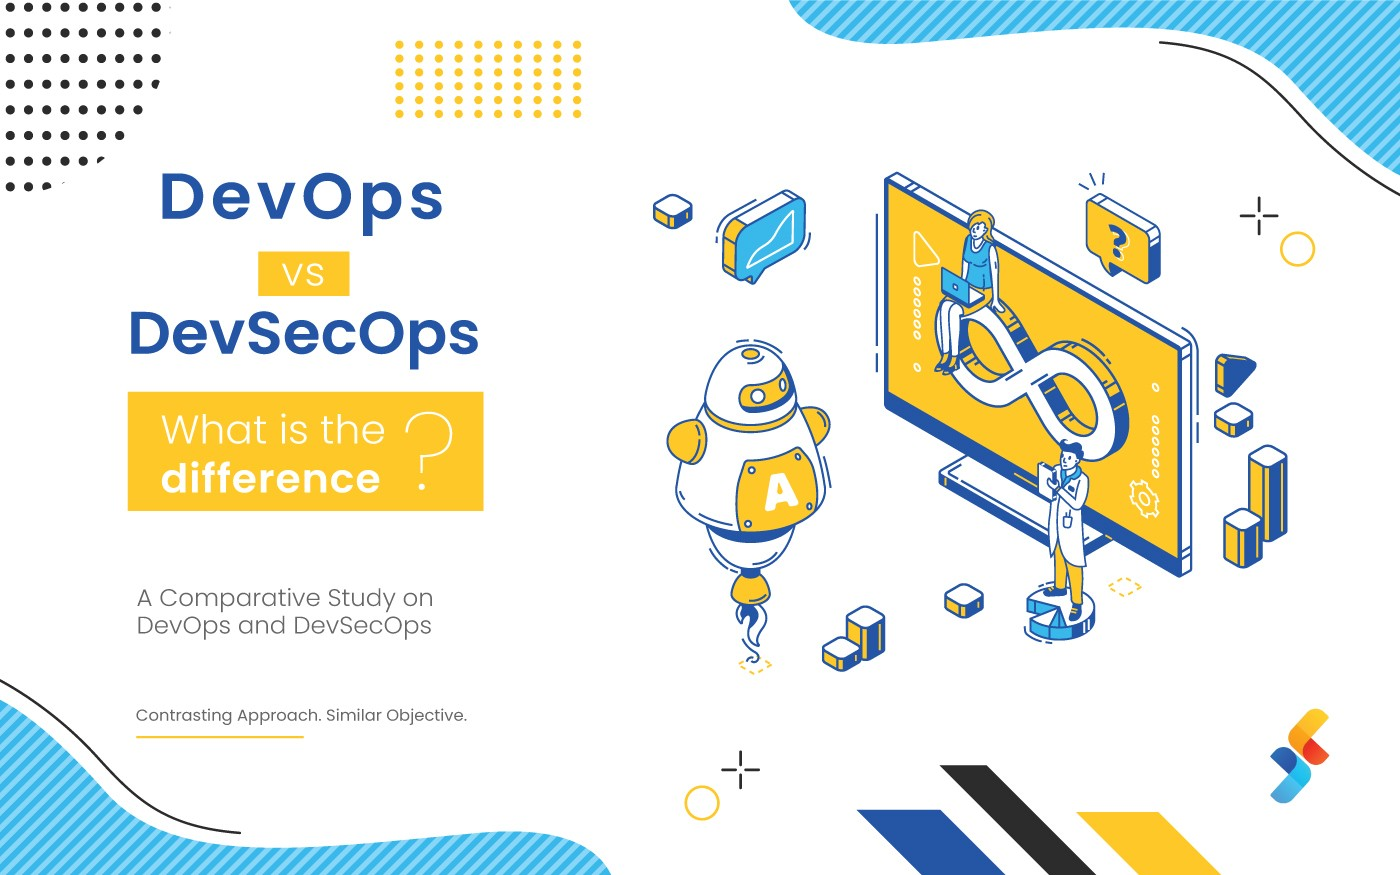 DevOps vs. DevSecOps: What is the difference?